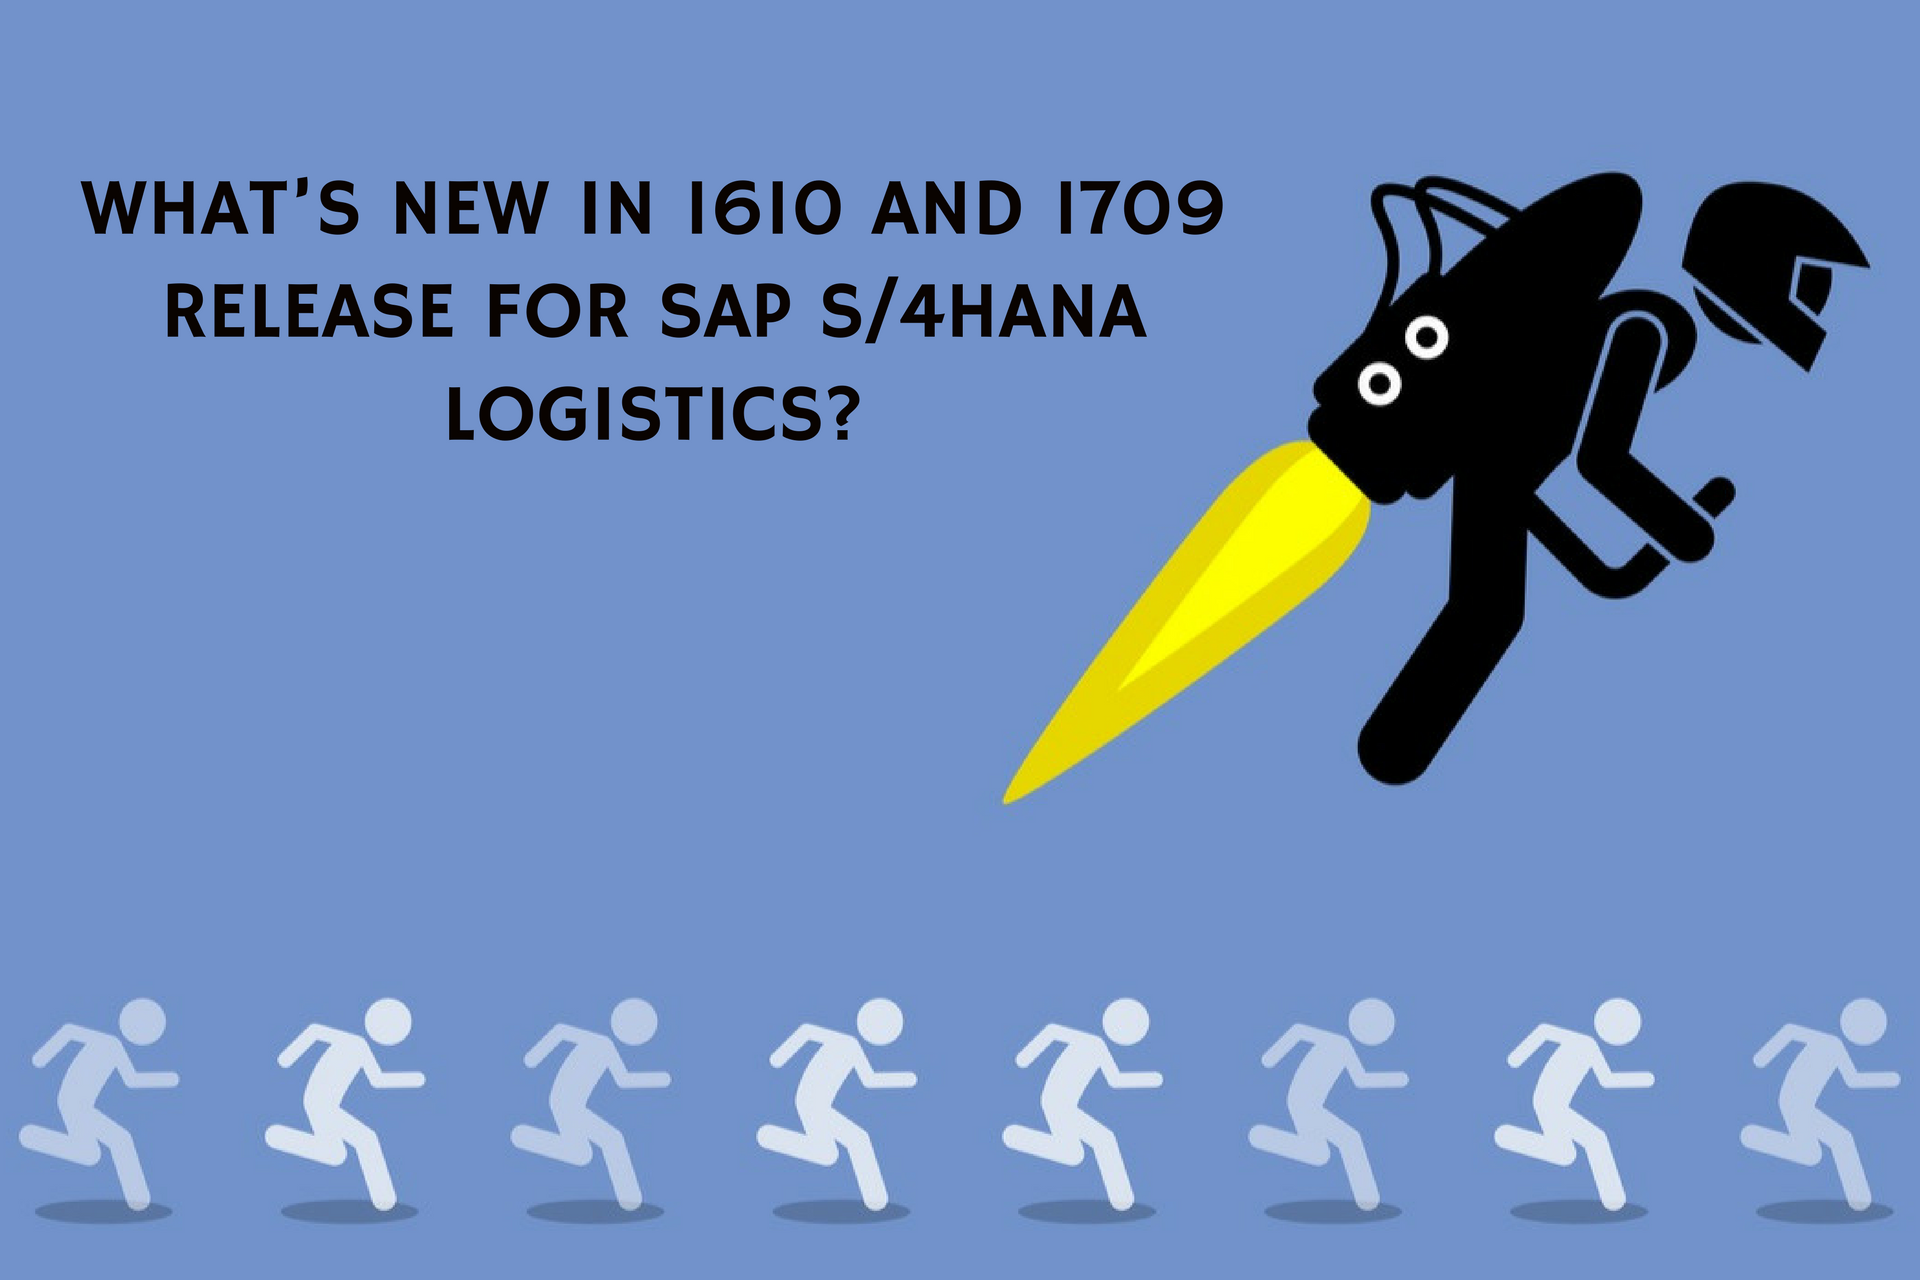 What's New in 1610 and 1709 Release for SAP S/4HANA Logistics